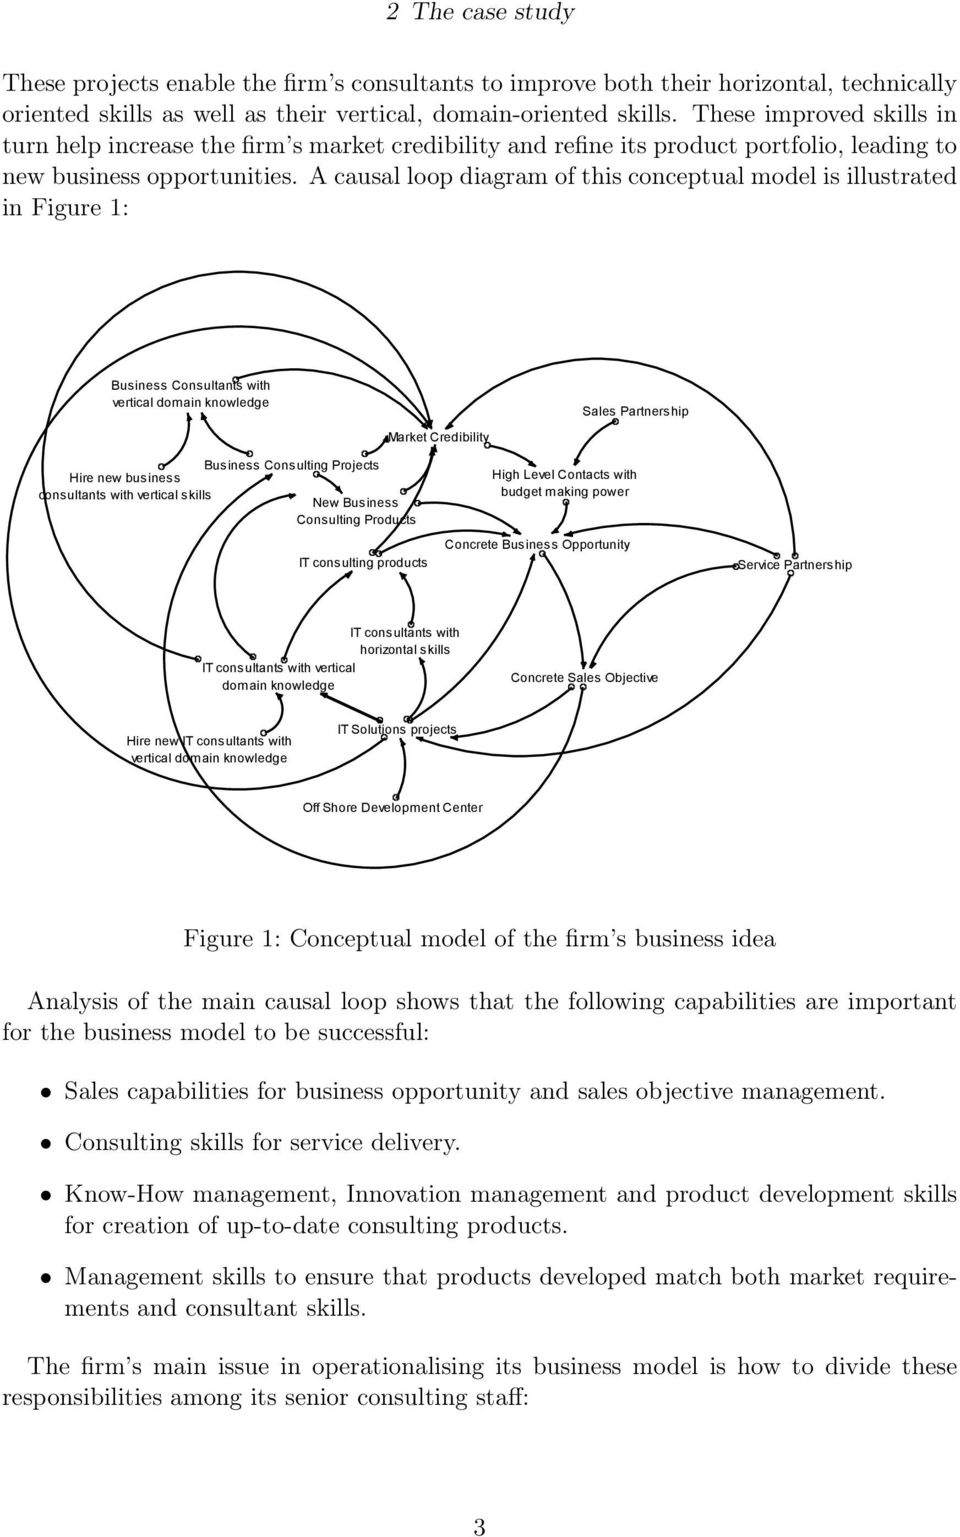 A causal loop diagram of this conceptual model is illustrated in Figure 1: Business Consultants with vertical domain knowledge Market Credibility Sales Partnership Hire new business consultants with